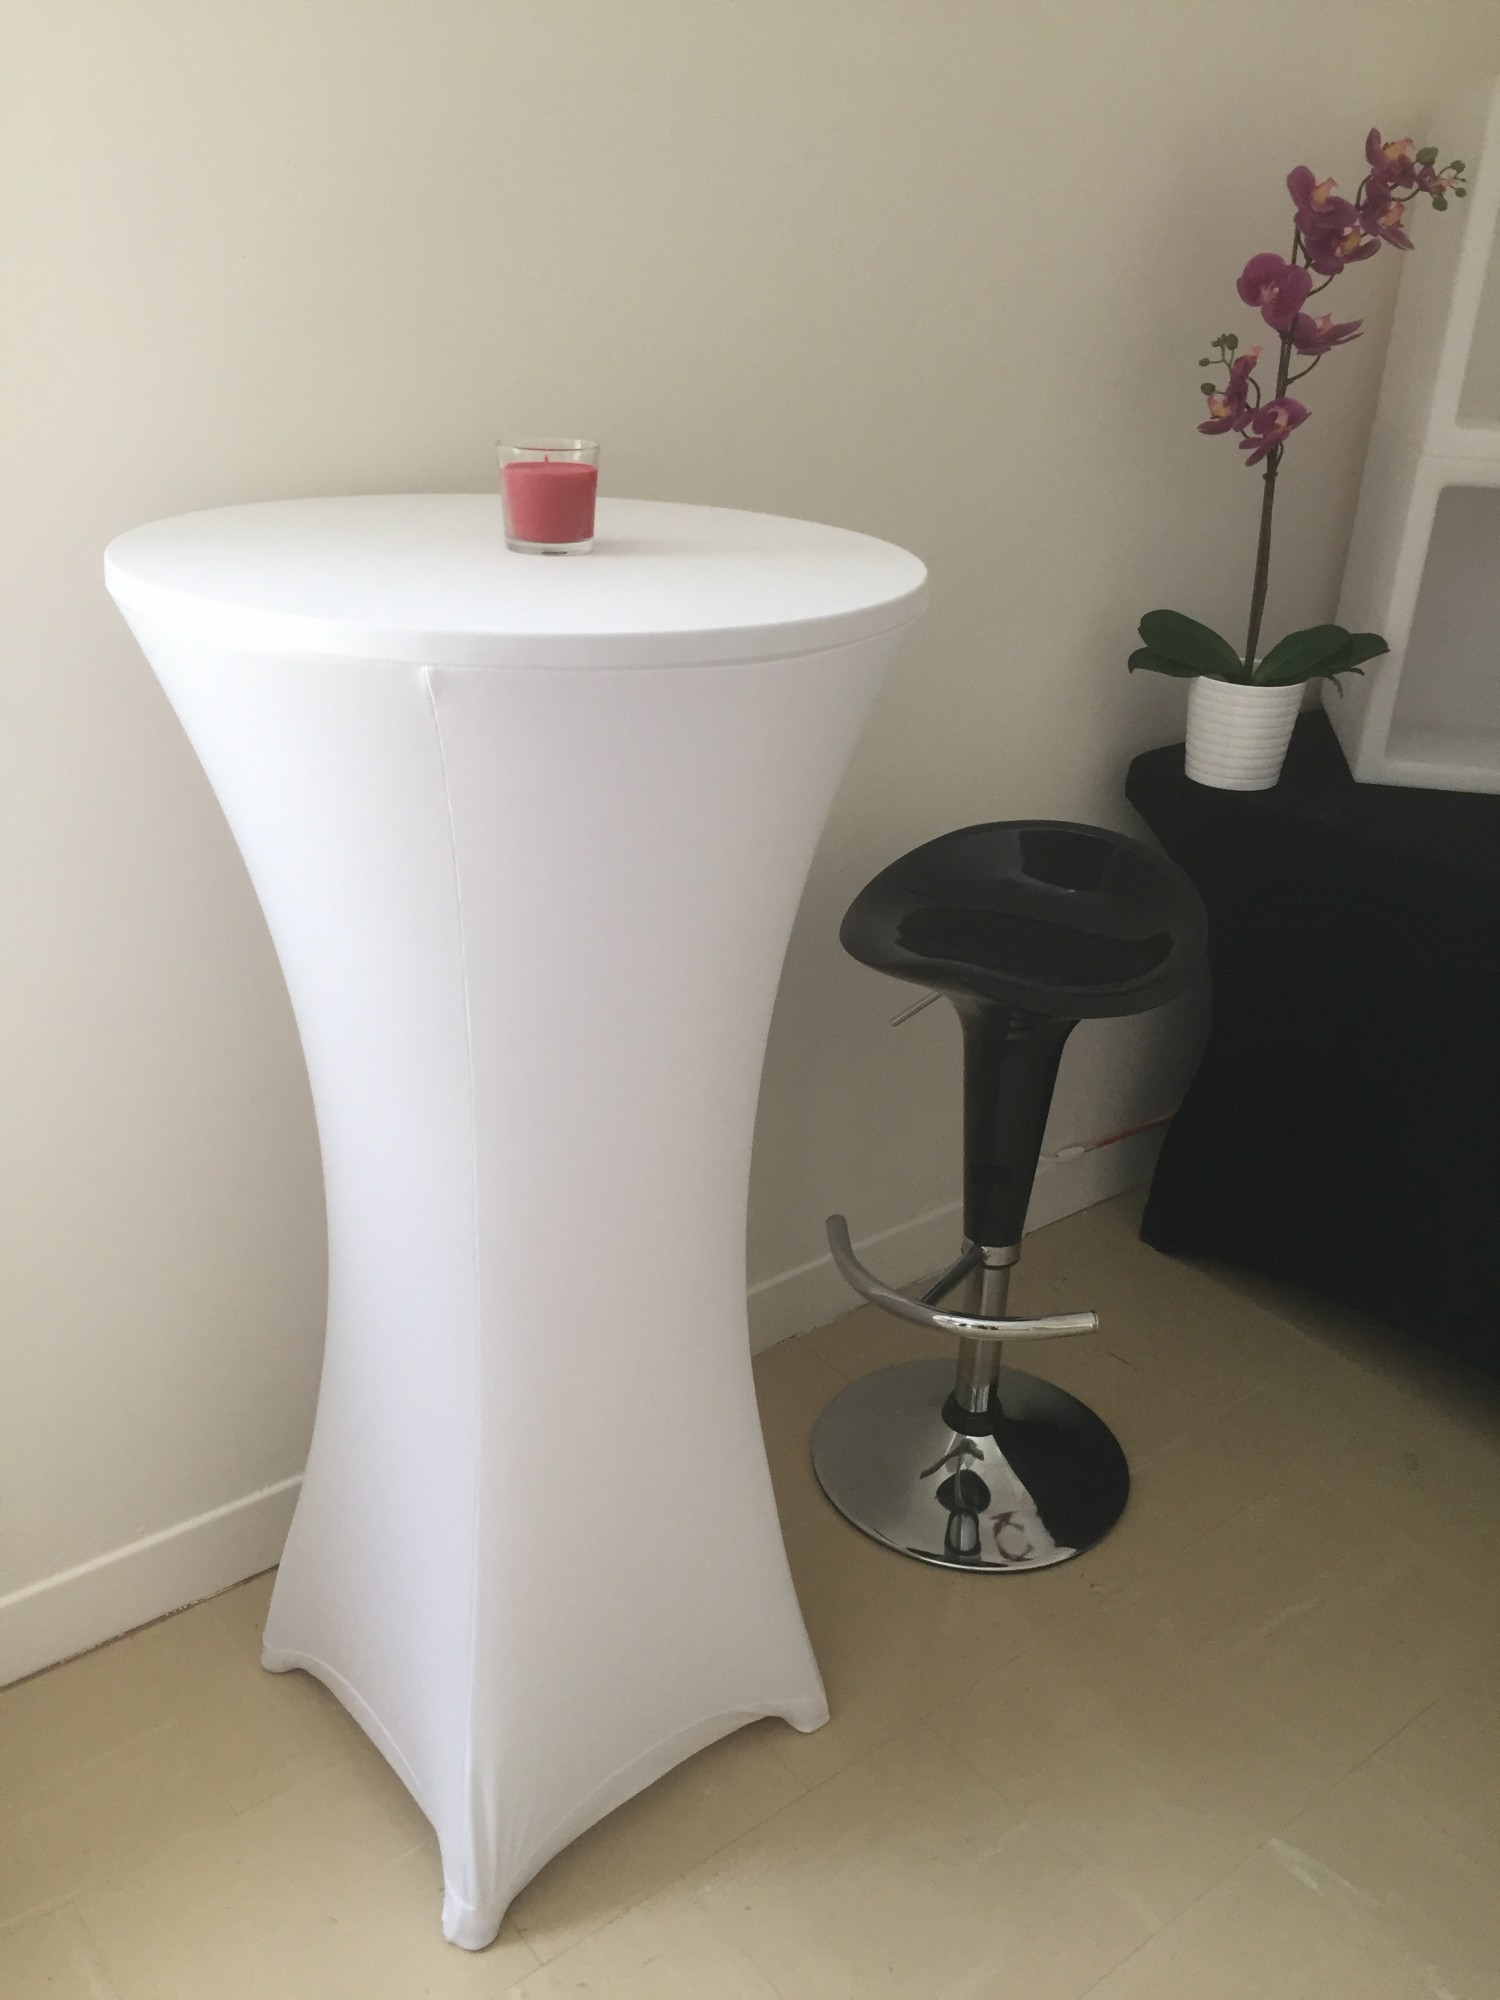 Location de mange debout lycra blanc location mobilier de for Location mange debout paris